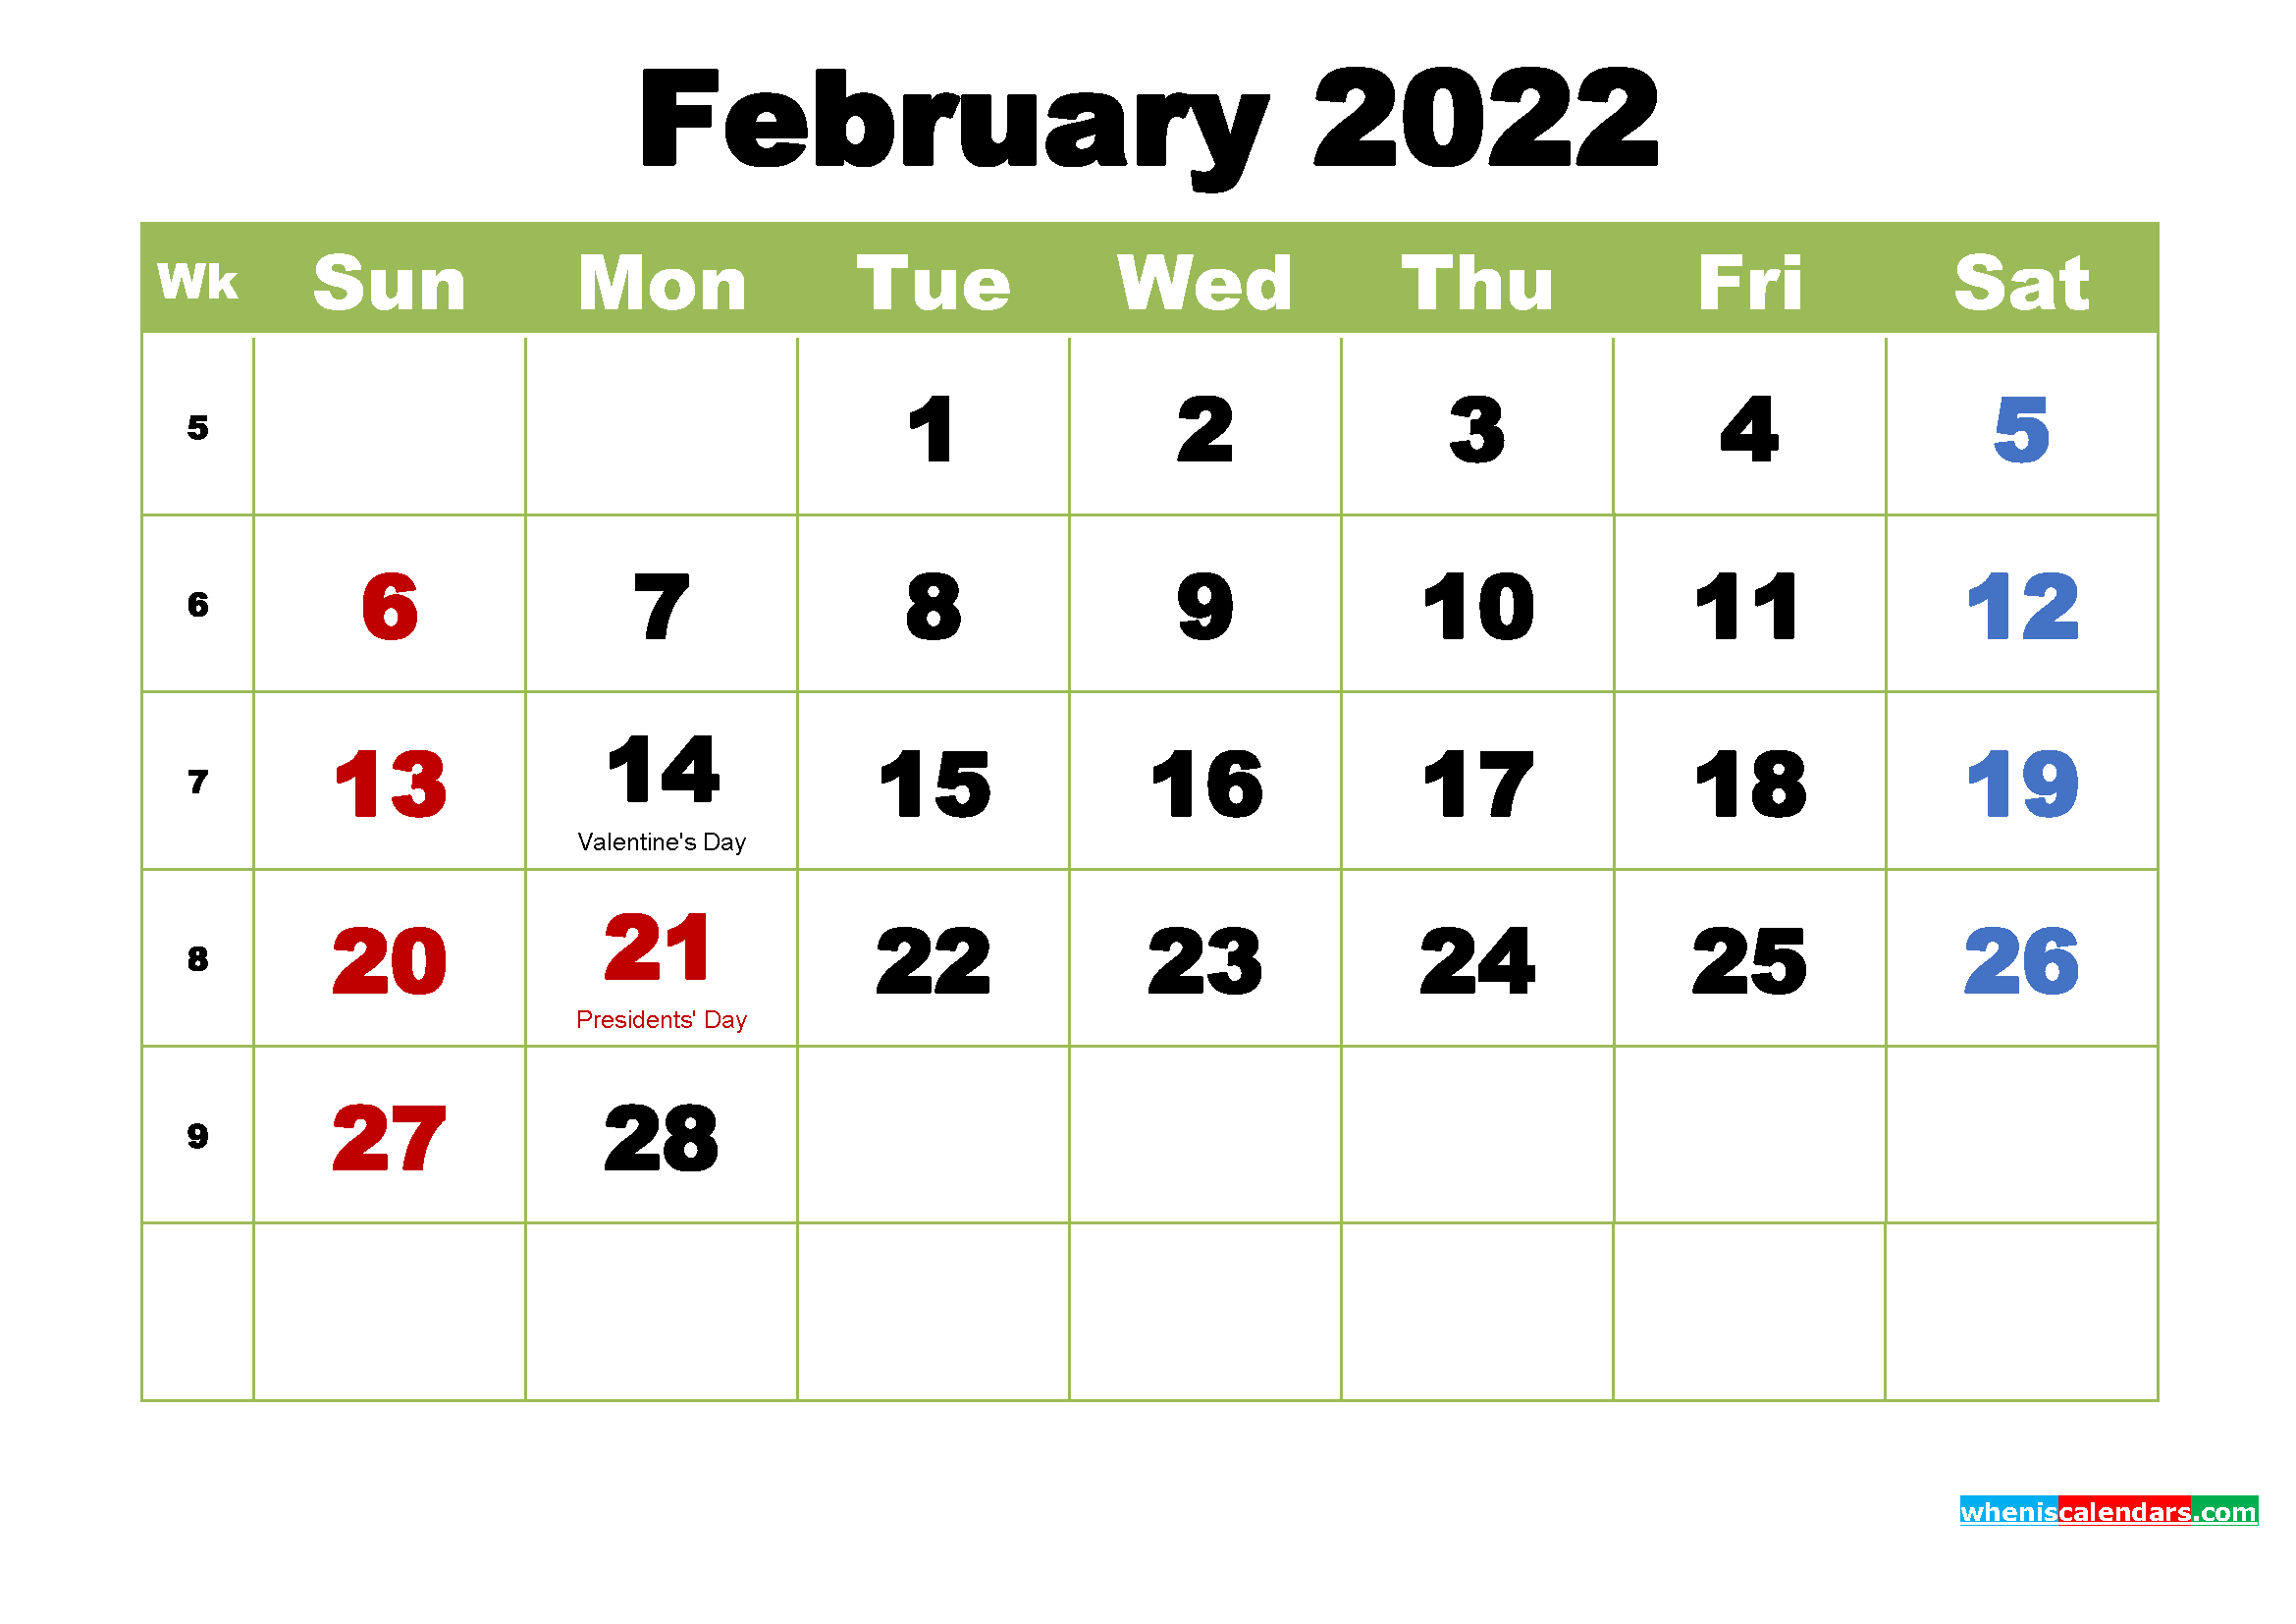 Free February 2022 Printable Calendar with Holidays